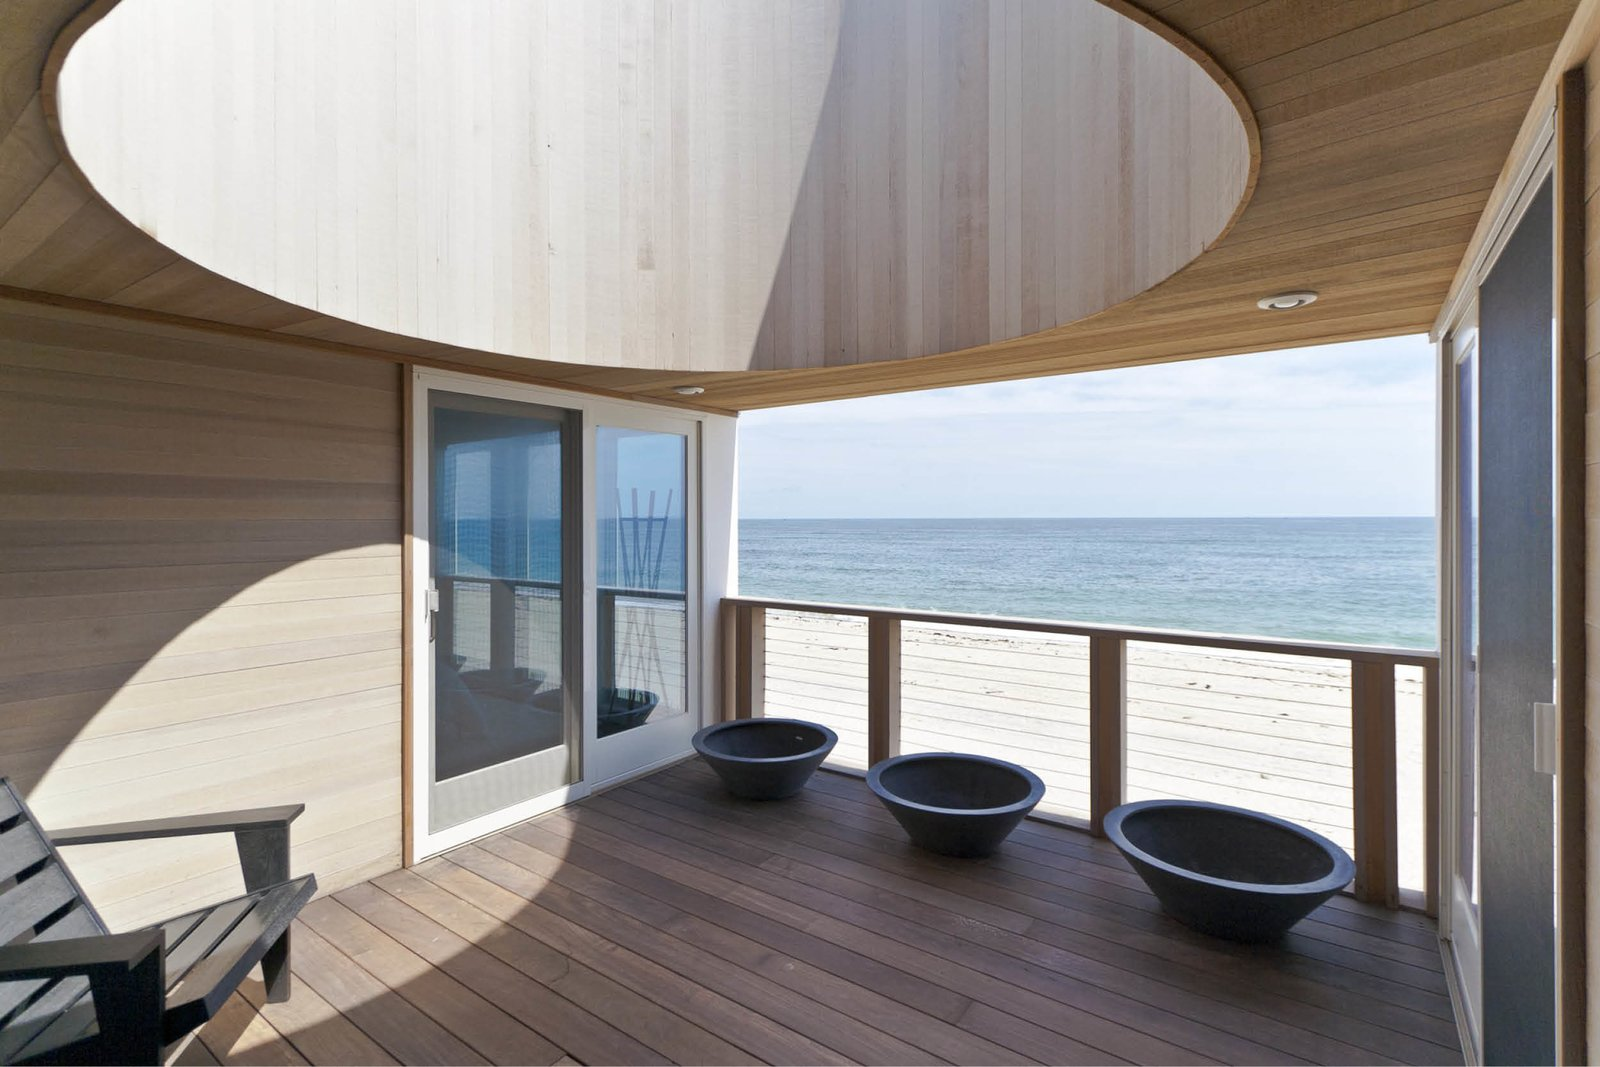 Wood, House, Wood, and Outdoor The oculus deck serves as an oversized sun dial  Outdoor Wood House Photos from Dune Road Beach House